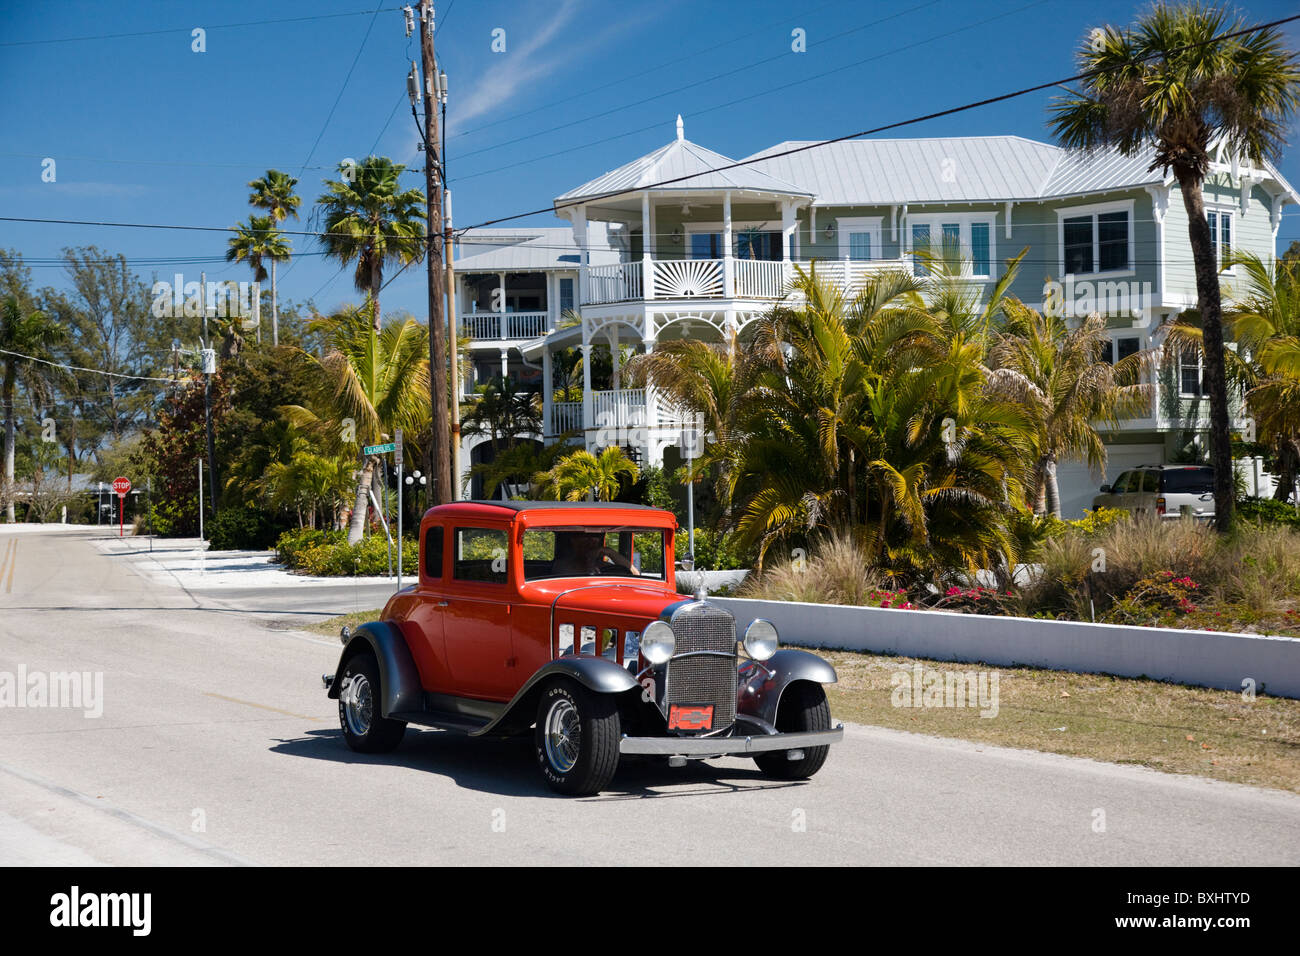 Vintage classic automobile, Chevrolet modelled, and luxury homes at vacation resort of Anna Maria Island, Florida, - Stock Image